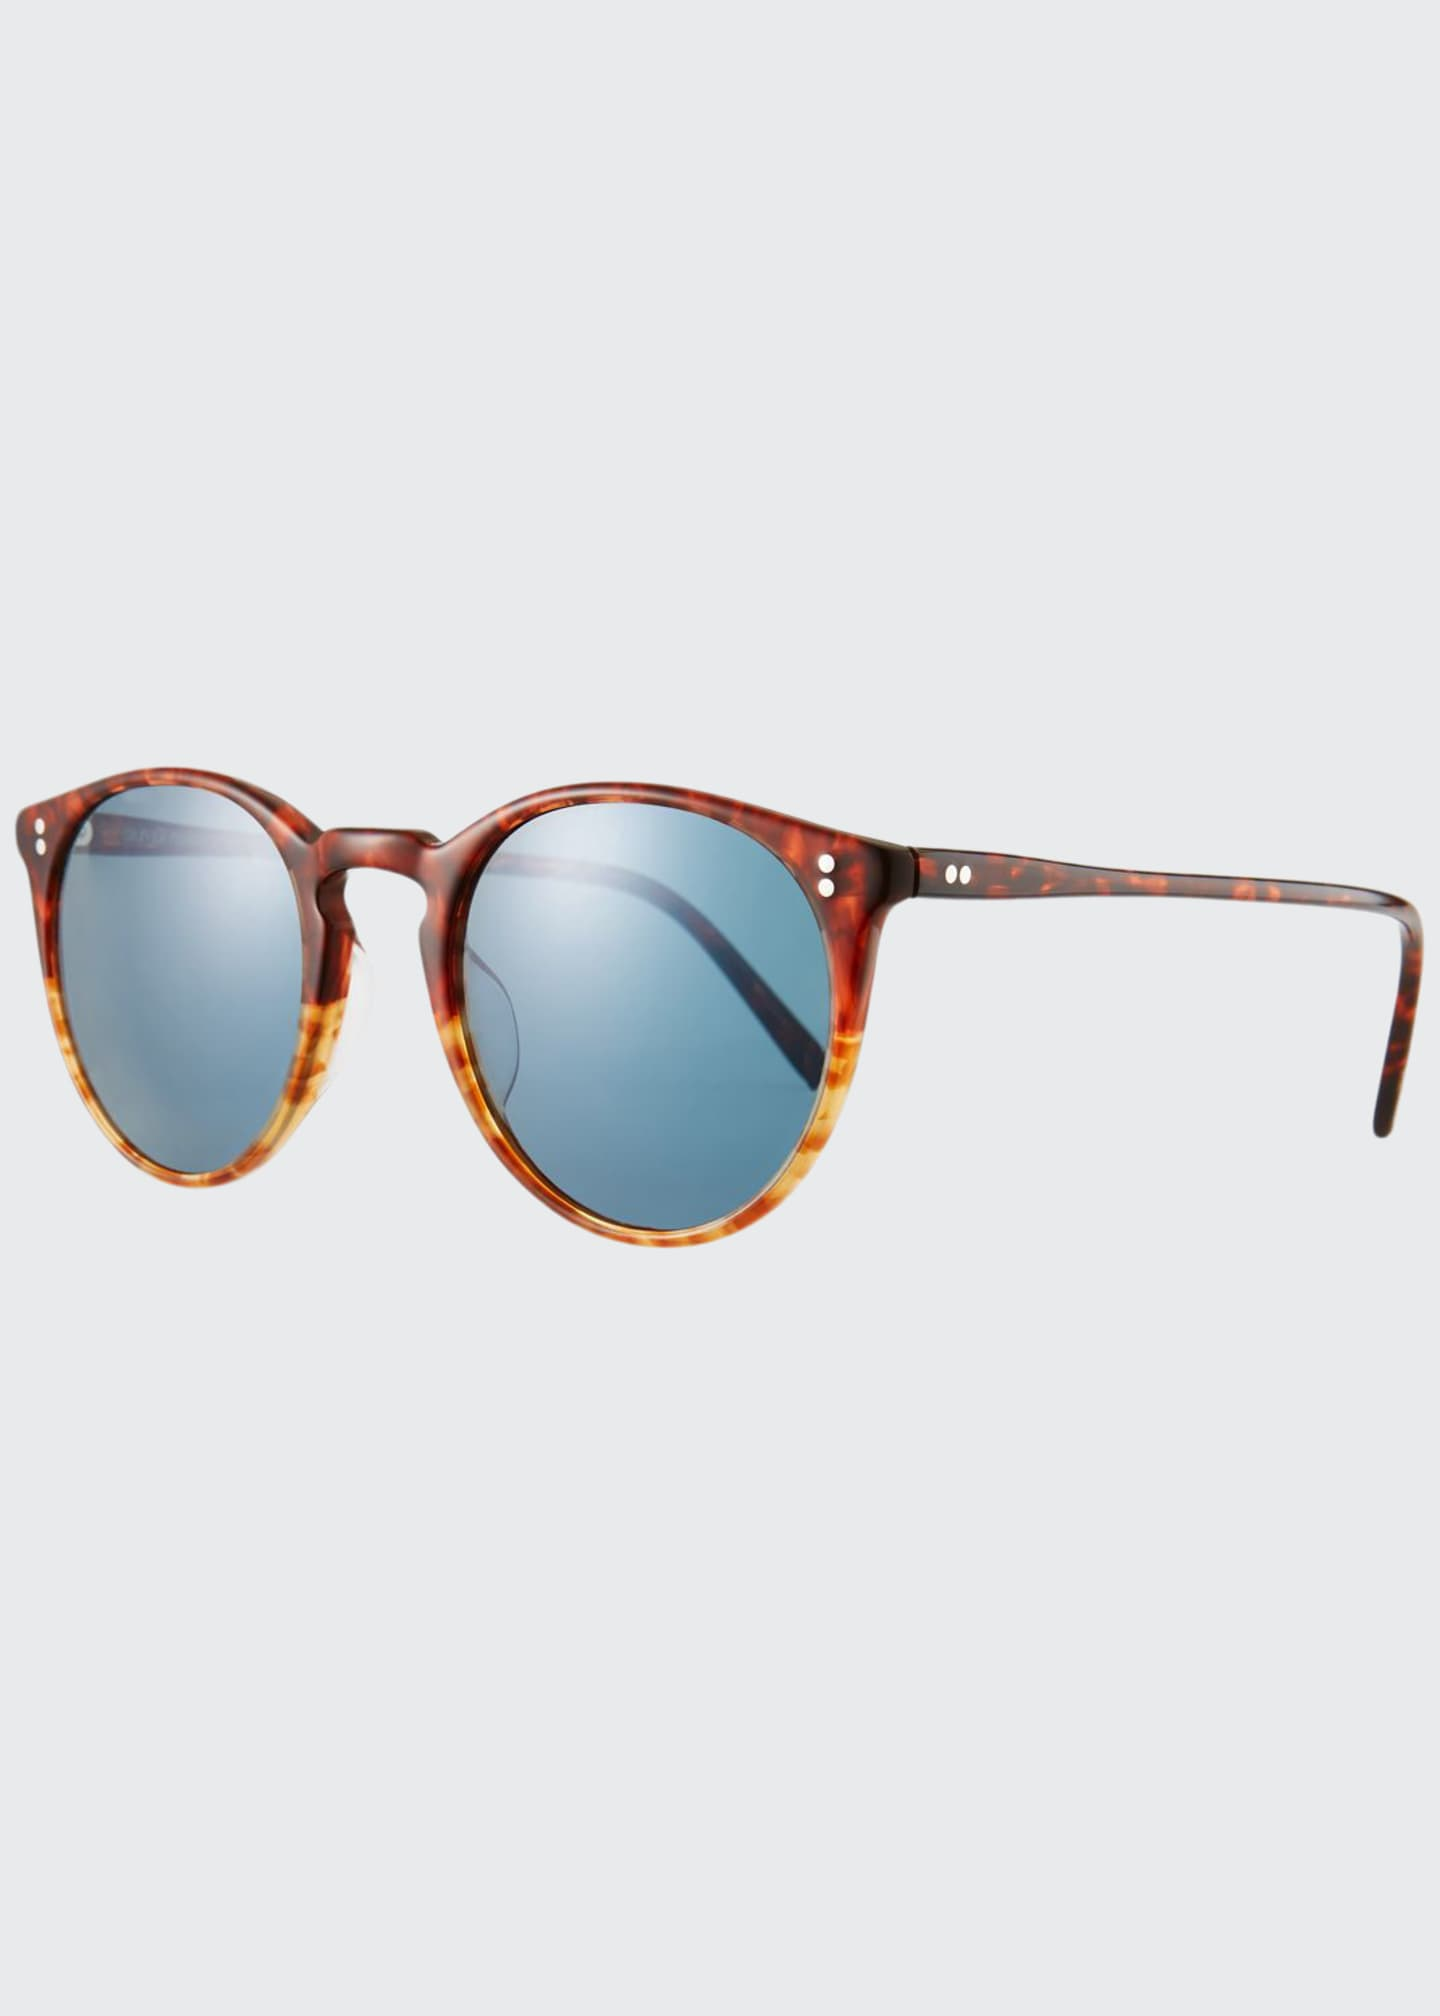 Oliver Peoples Men's O'Malley Peaked Round Photochromic